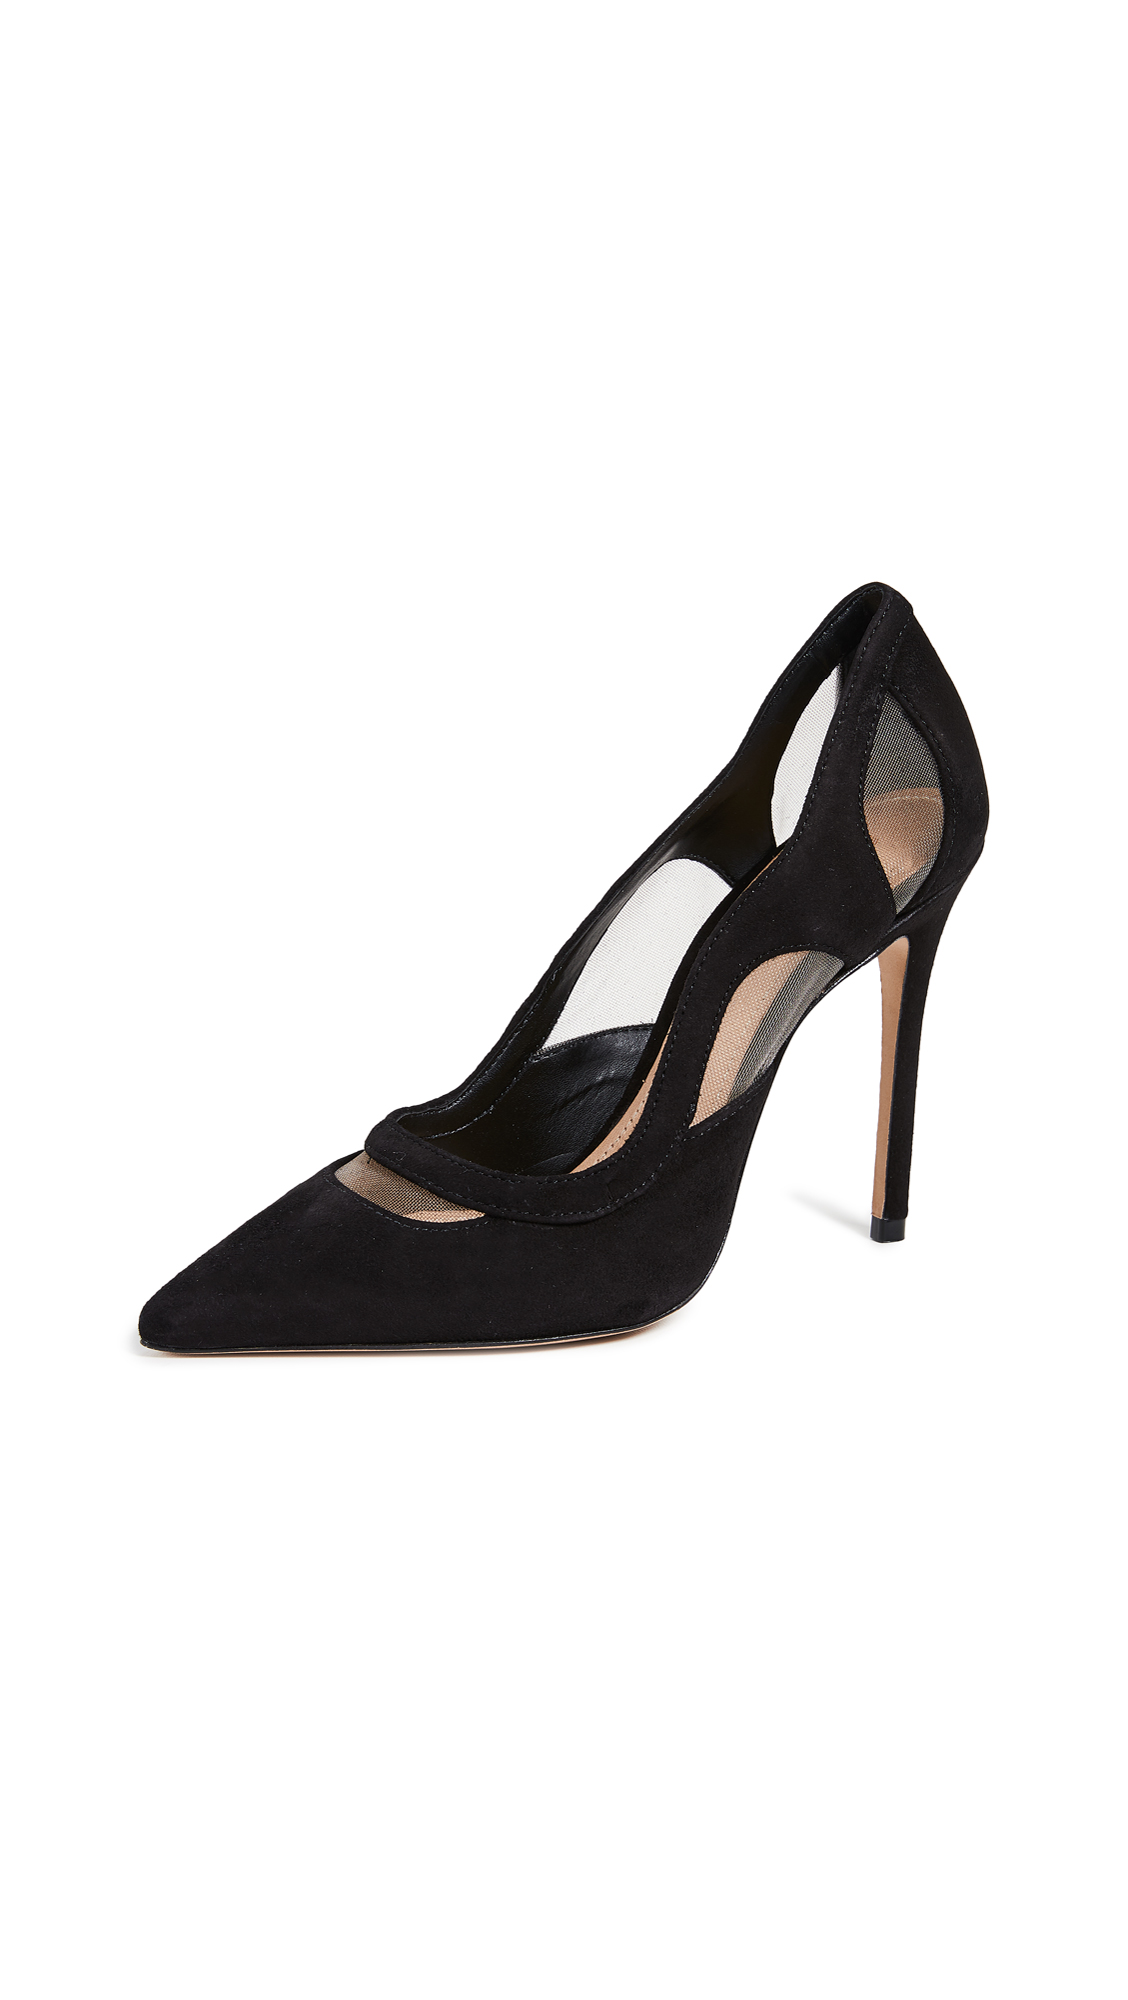 Women'S Poliany Pointed-Toe Pumps in Black from SCHUTZ-SHOES